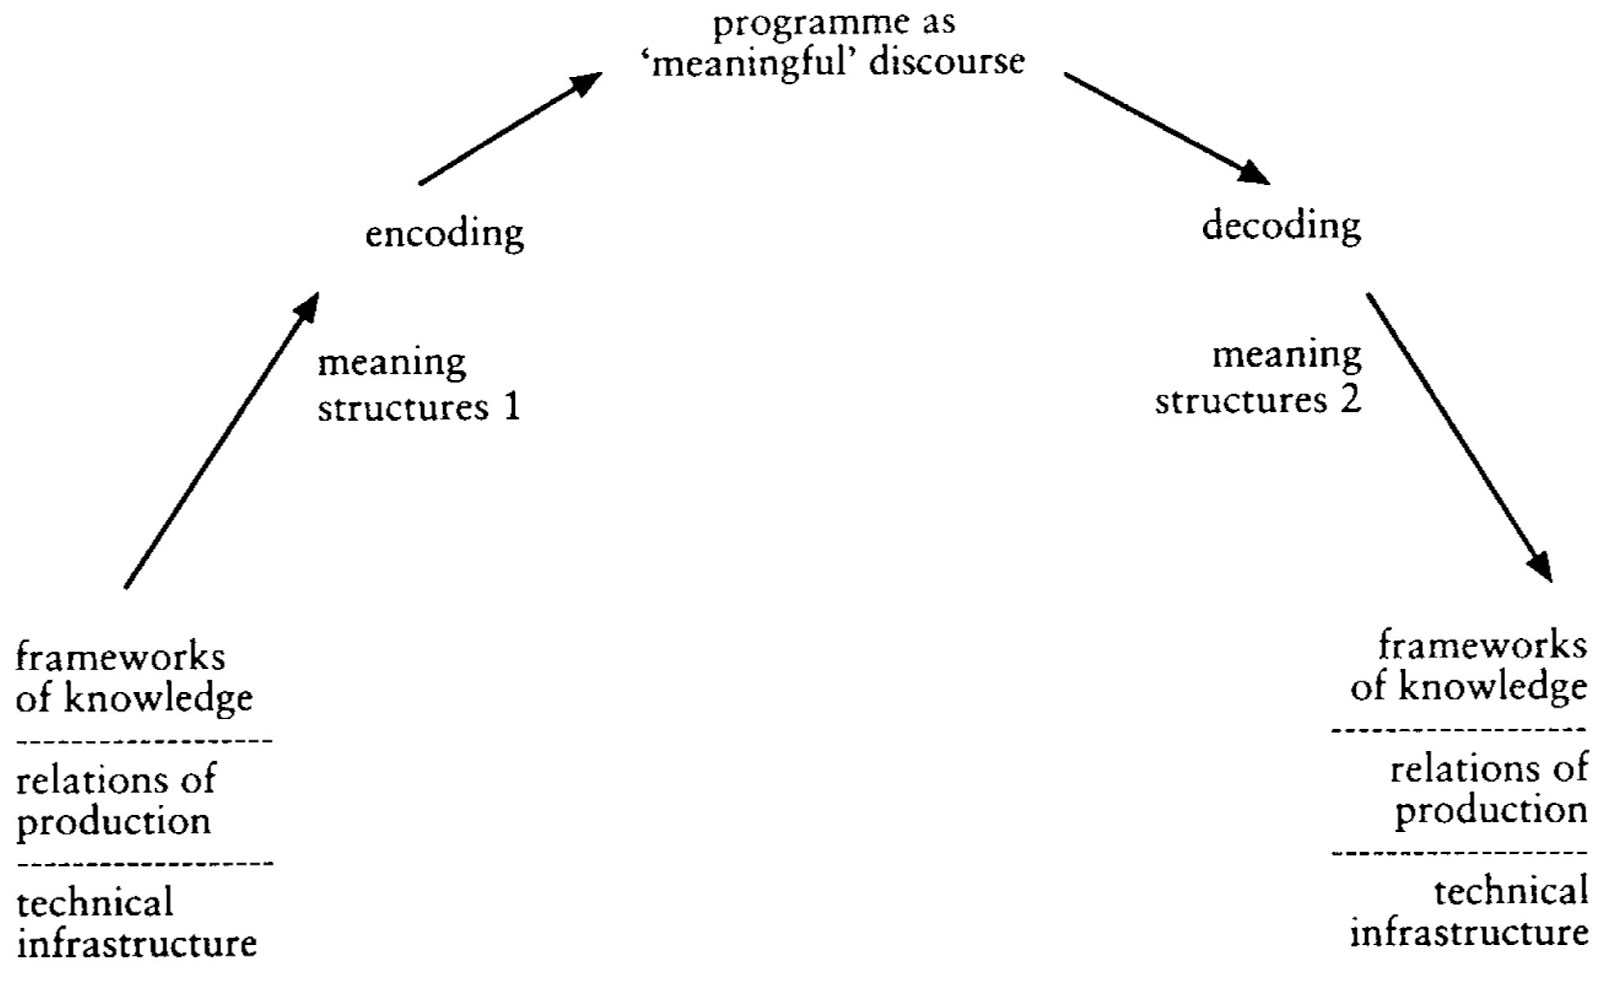 stuart halls encoding and decoding essay Hall essays decoding stuart and encoding 2080 stars – based on 47 reviews author archive october 3, 2018 stuart hall encoding and decoding essays previous post leave a reply cancel reply your email address will not be published required fields are marked  comment name  email.